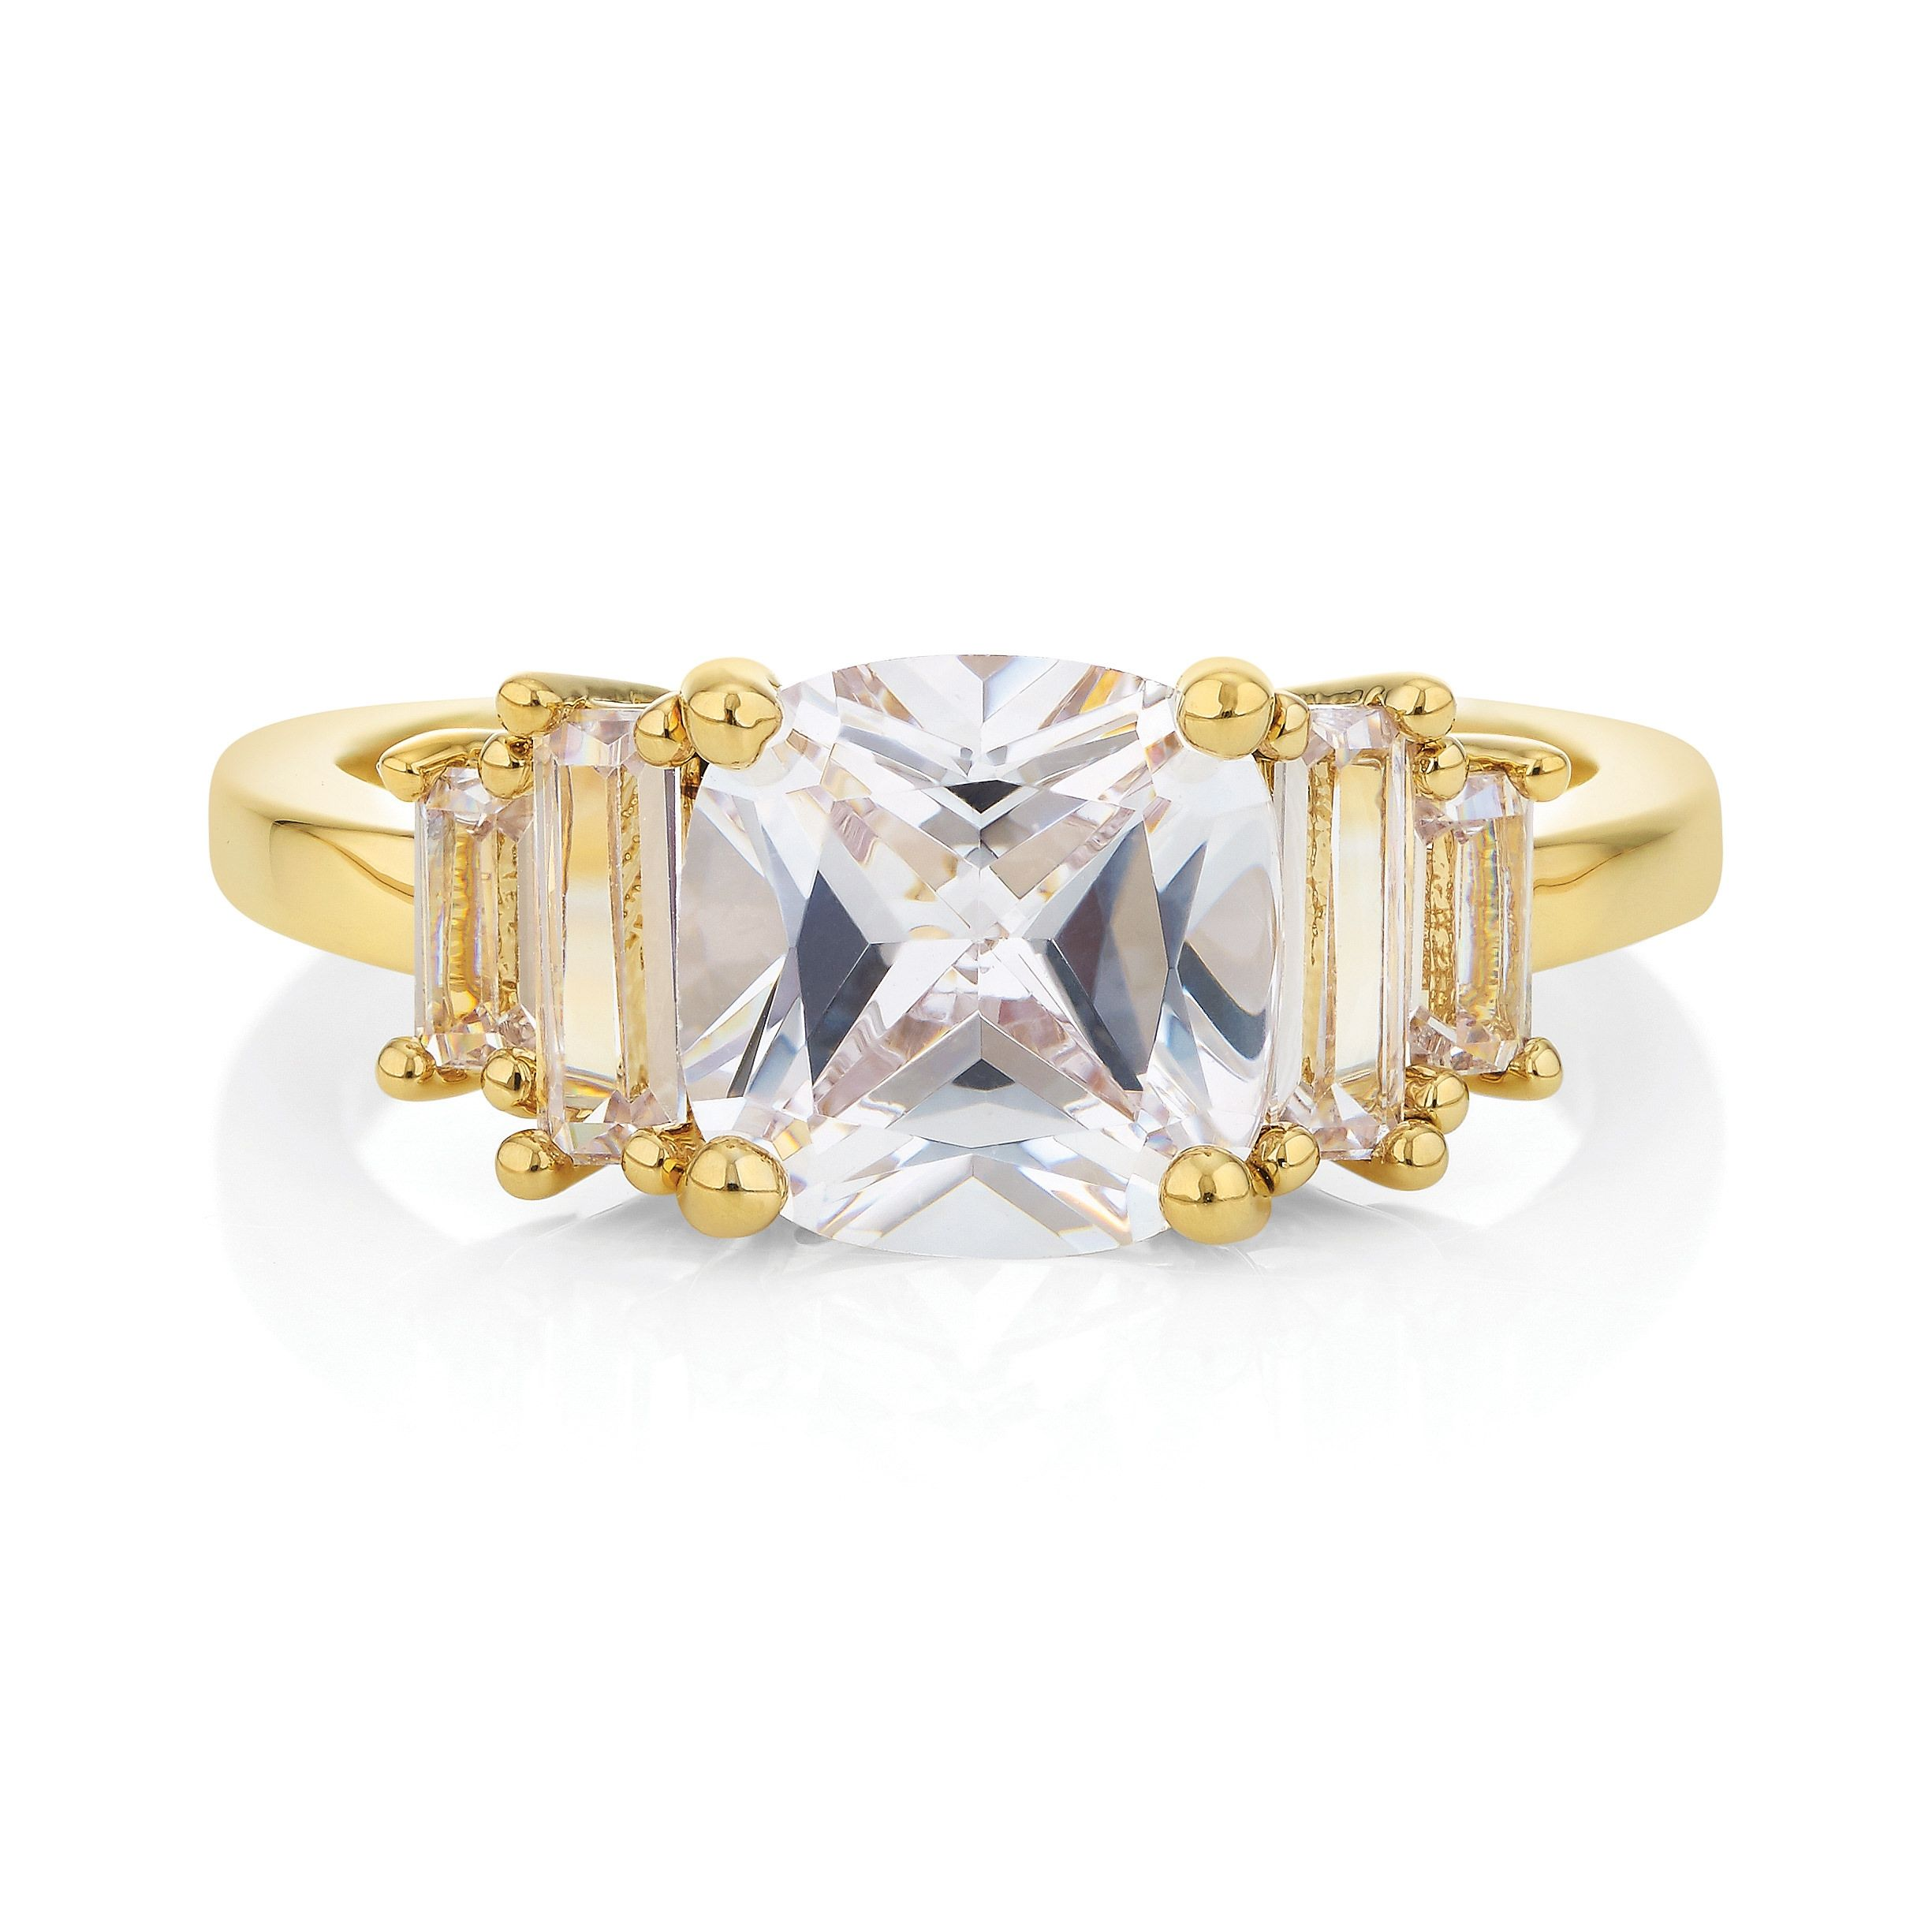 Buckley London Staggered Baguette Ring